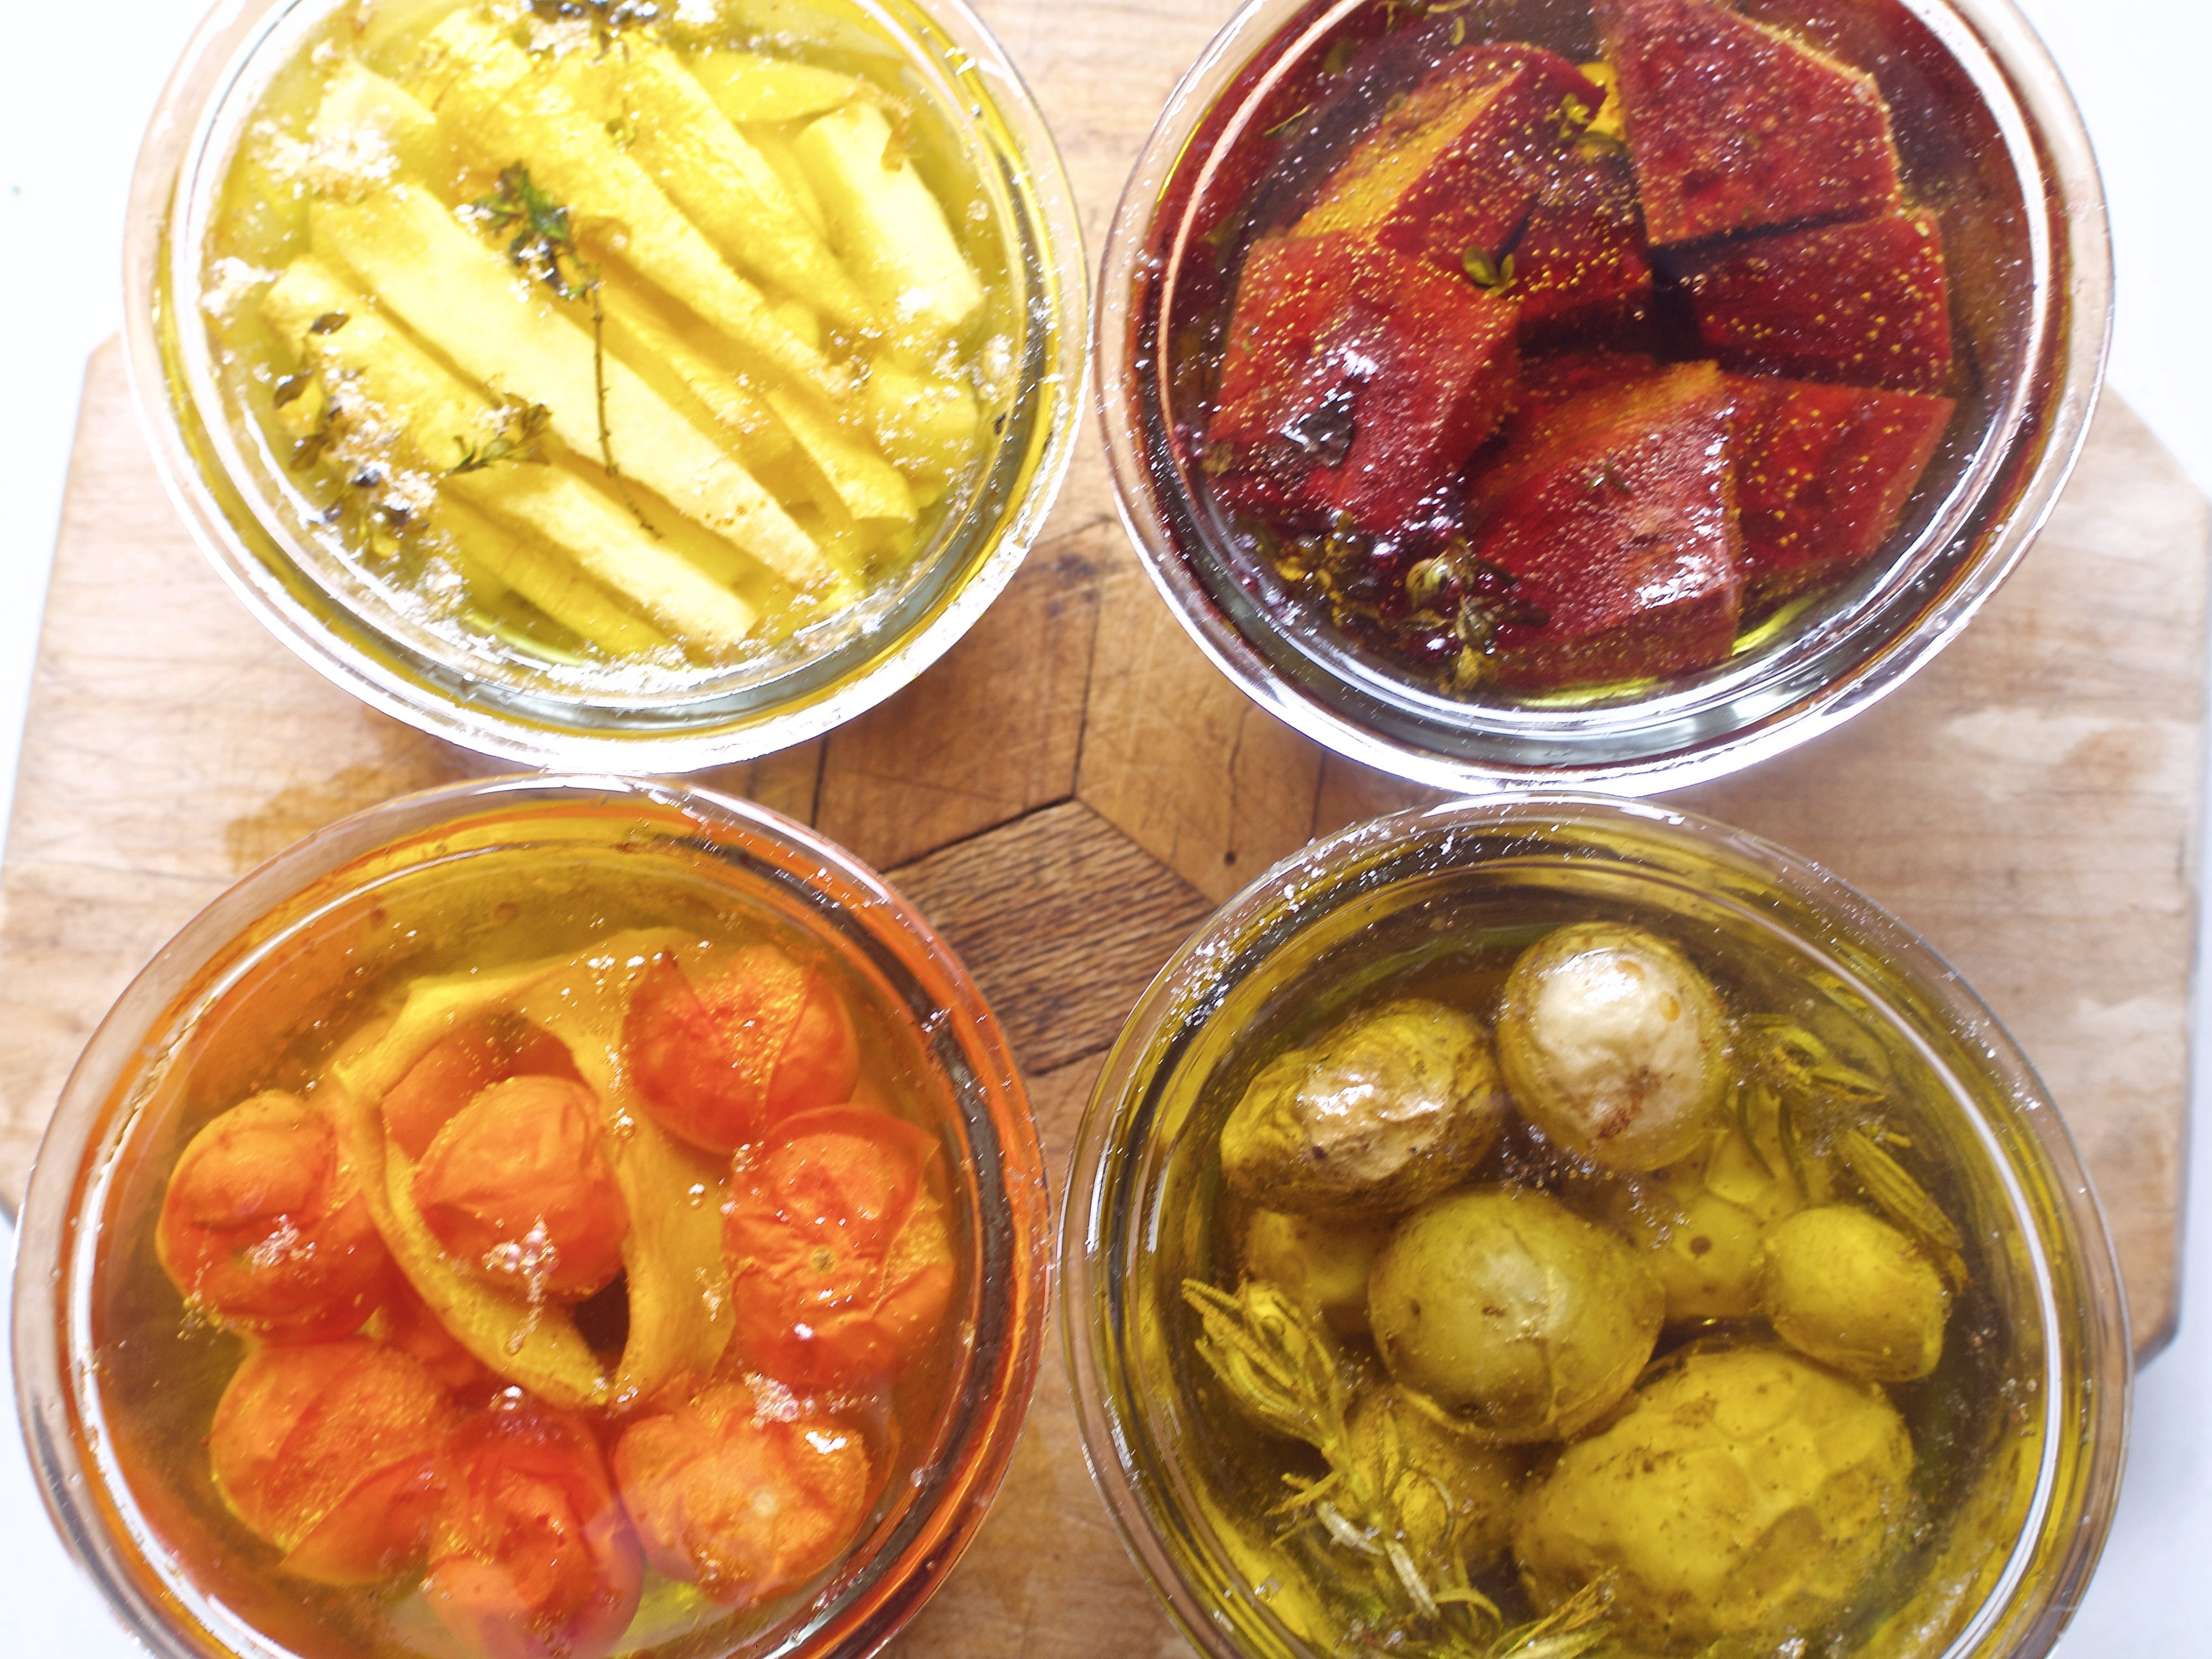 four jars of oil and confit'd veg — parsnip, beet, tomato, and potatoes — in rich color